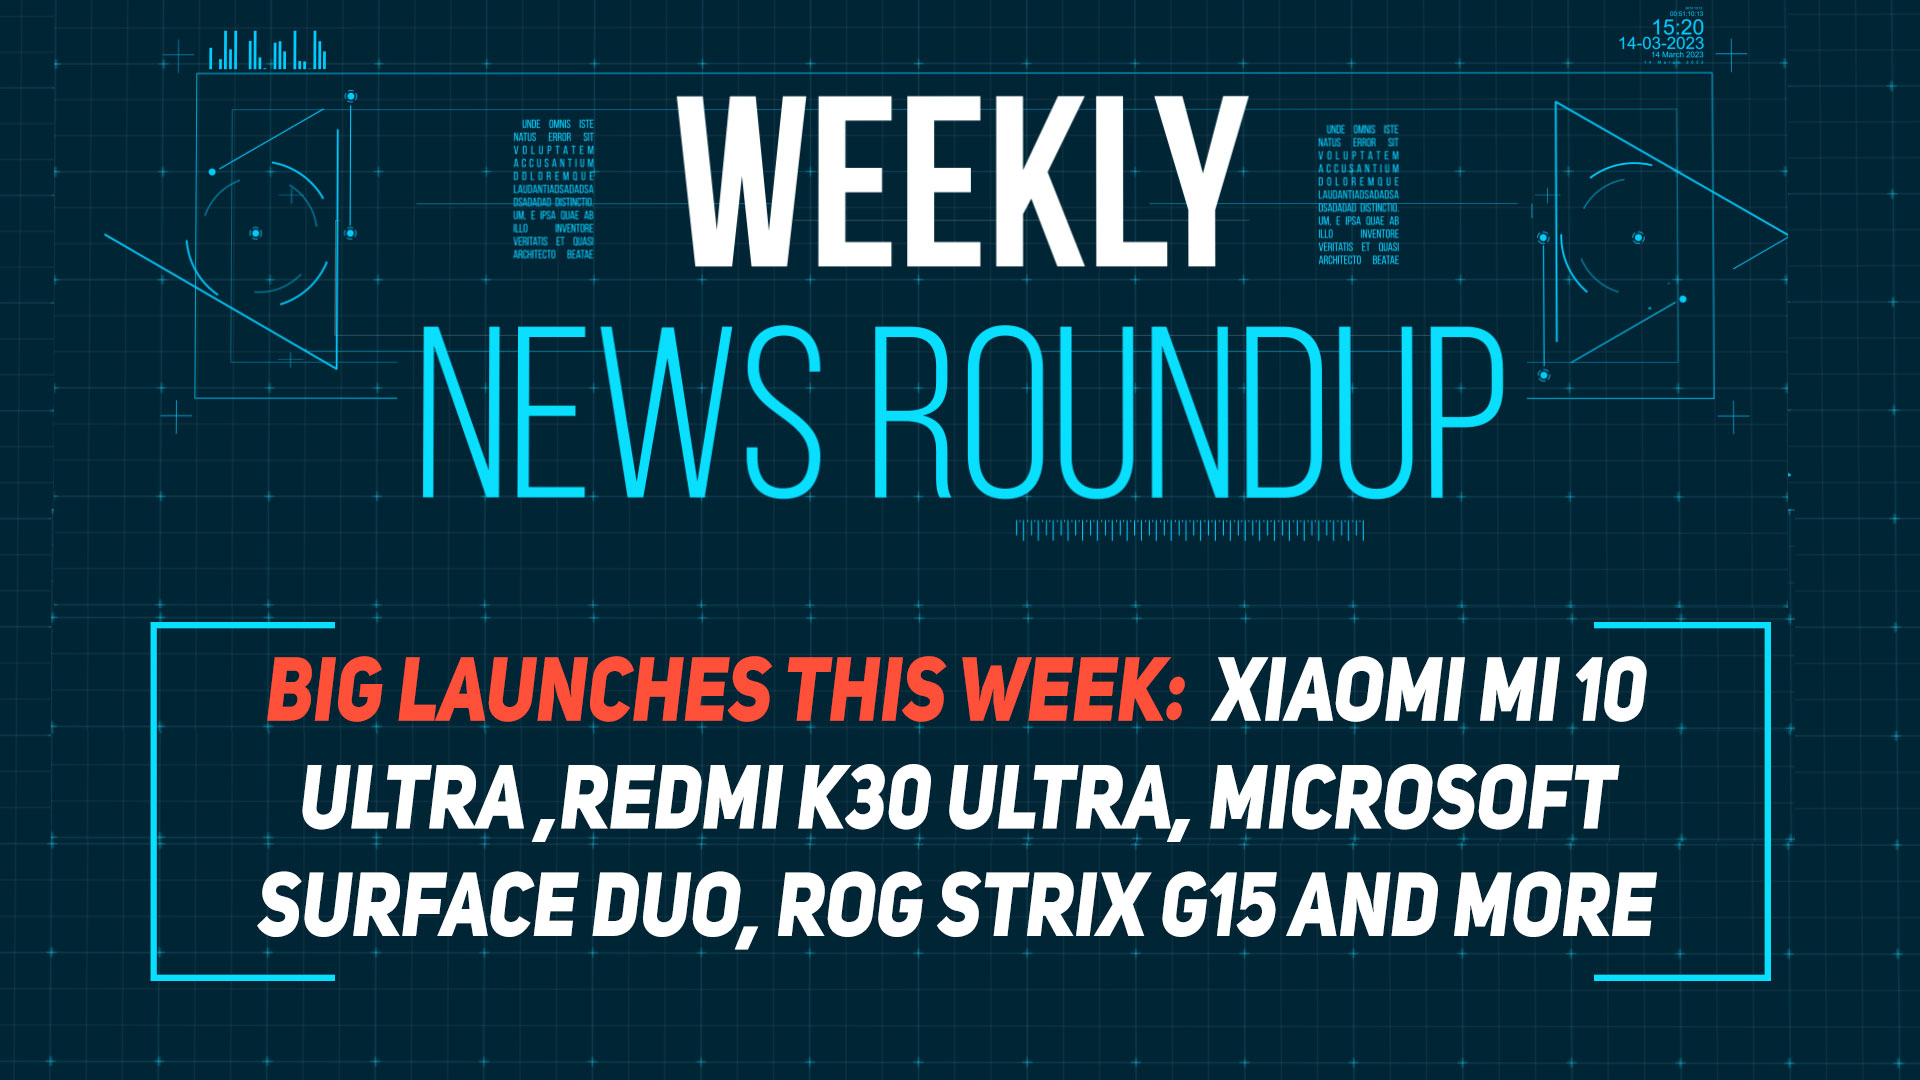 MIUI 12, Mi 10 Ultra, Microsoft Surface Duo and more: Weekly News Roundup